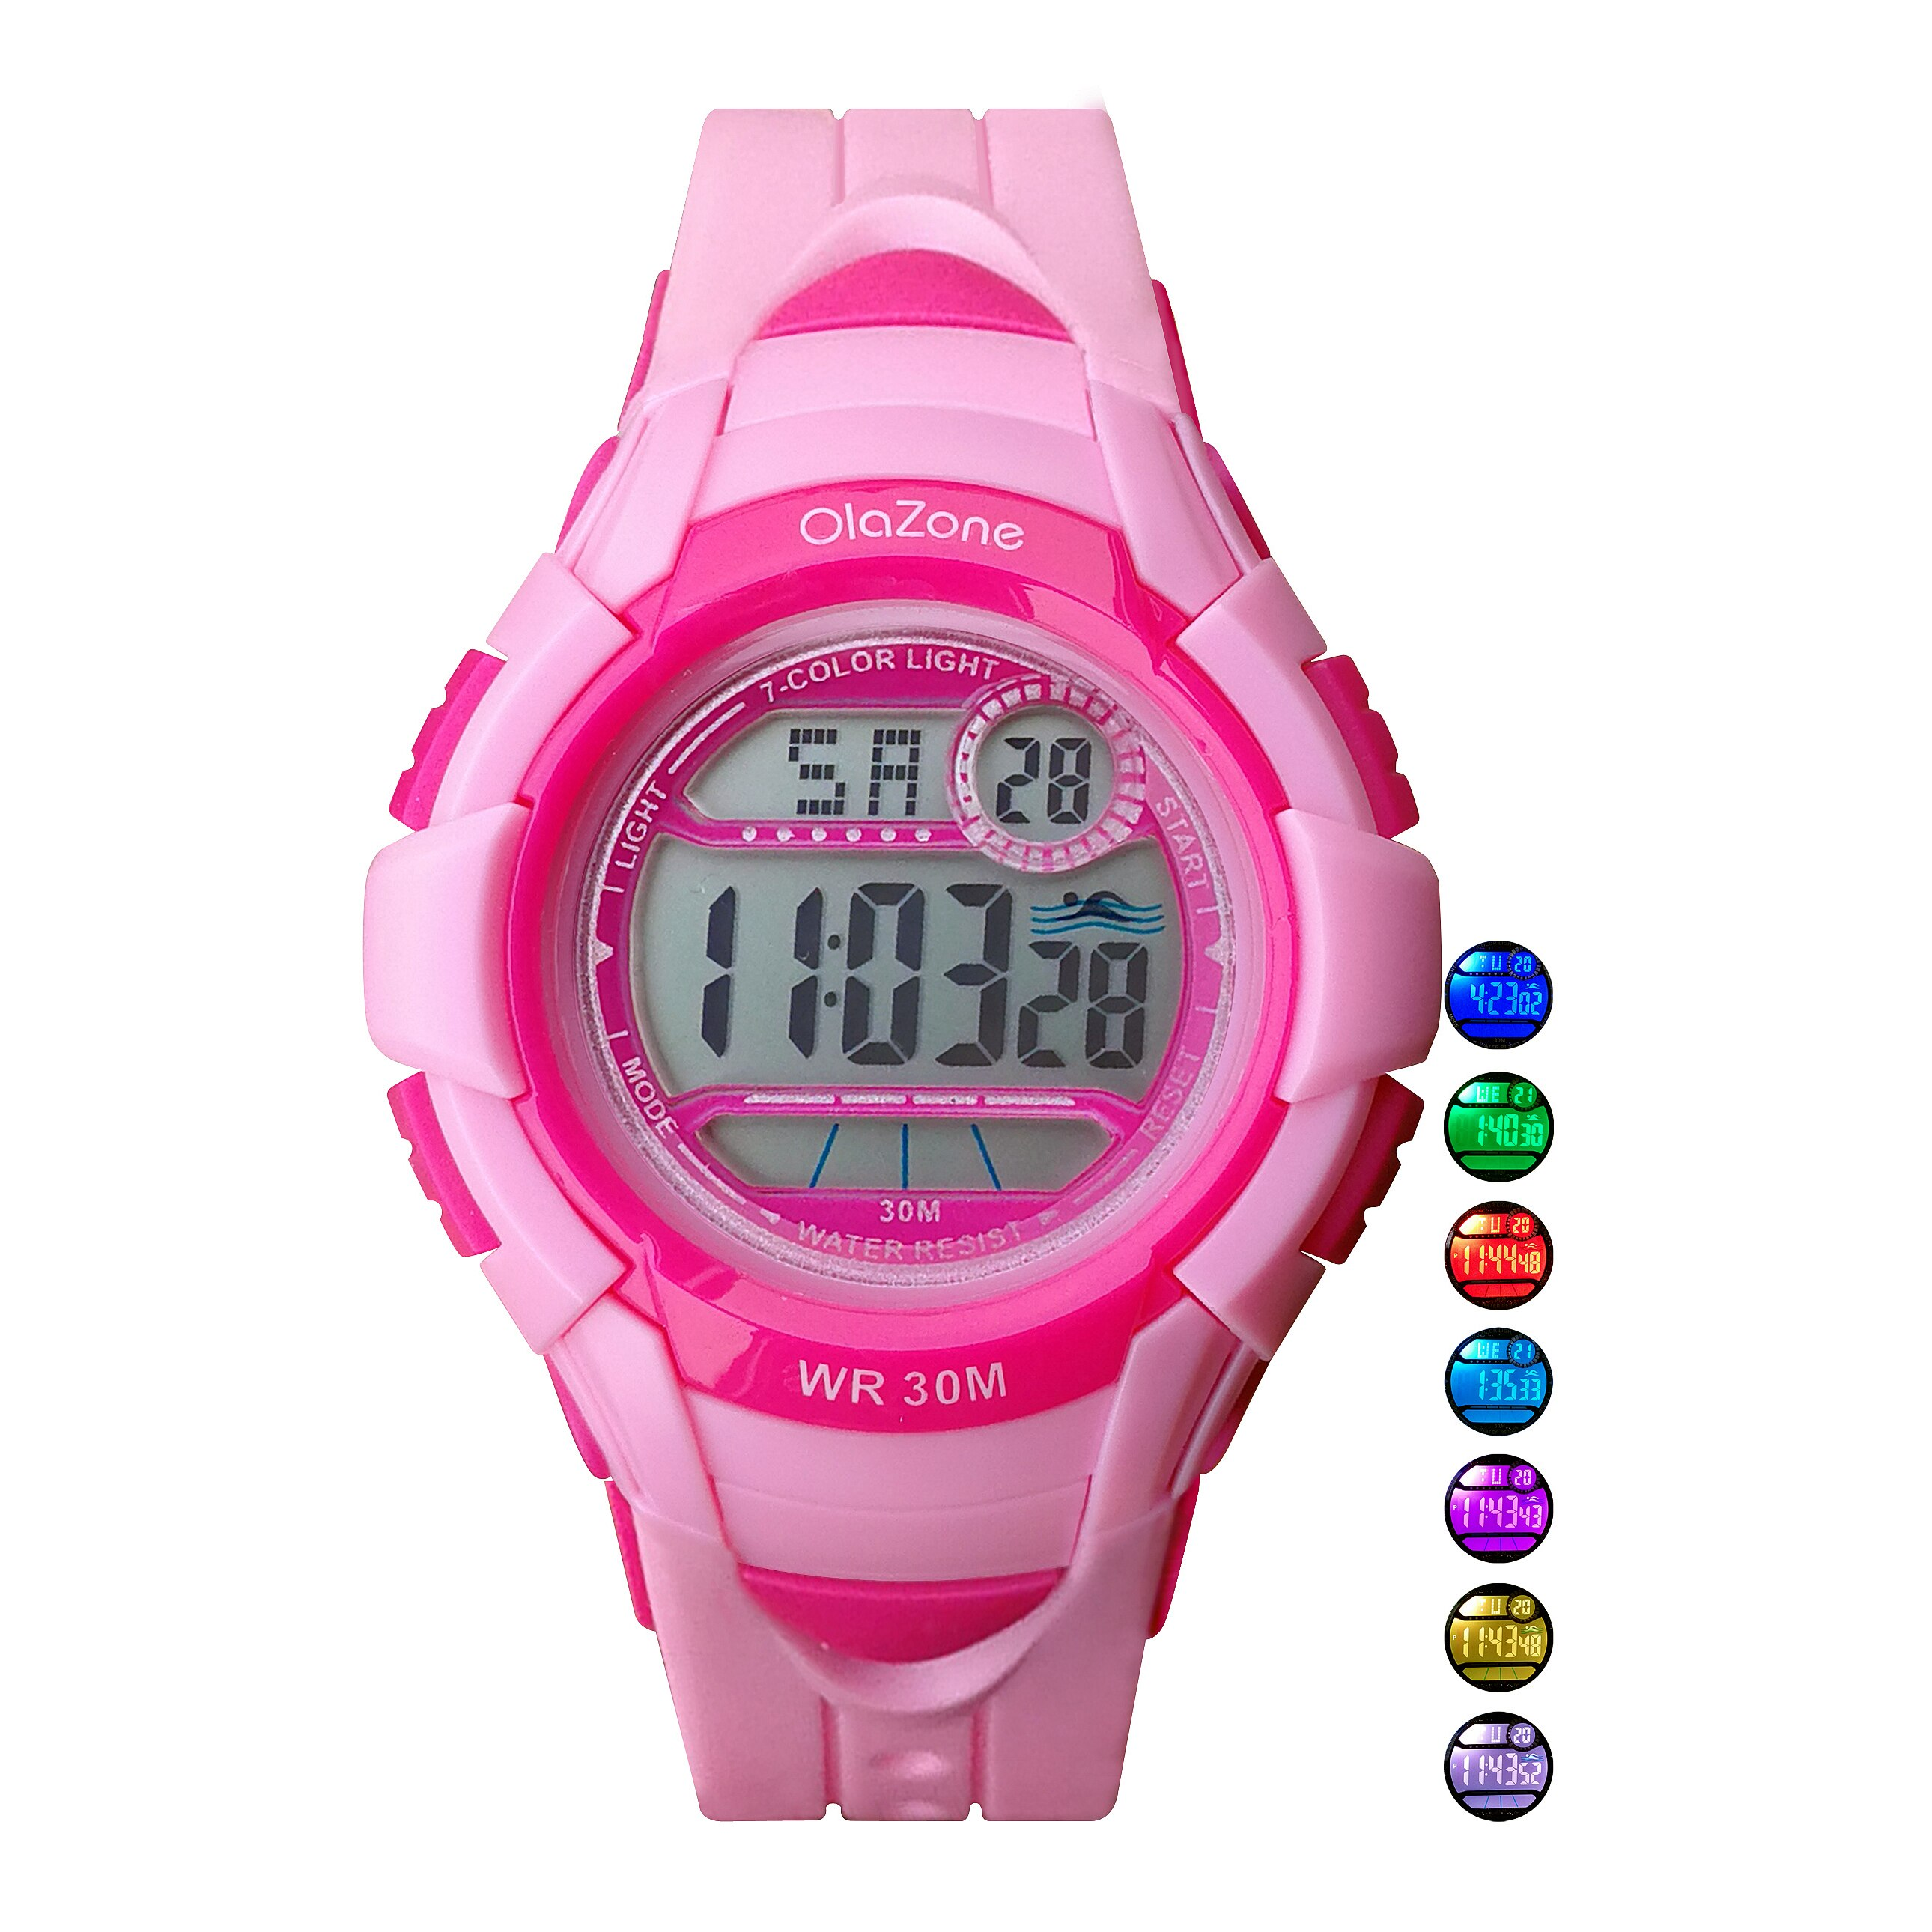 Kids Watches Girls Digital 7-Color Flashing Light Water Resistant 100FT Alarm Gifts for Children's Watches Age 7-10 Years Old